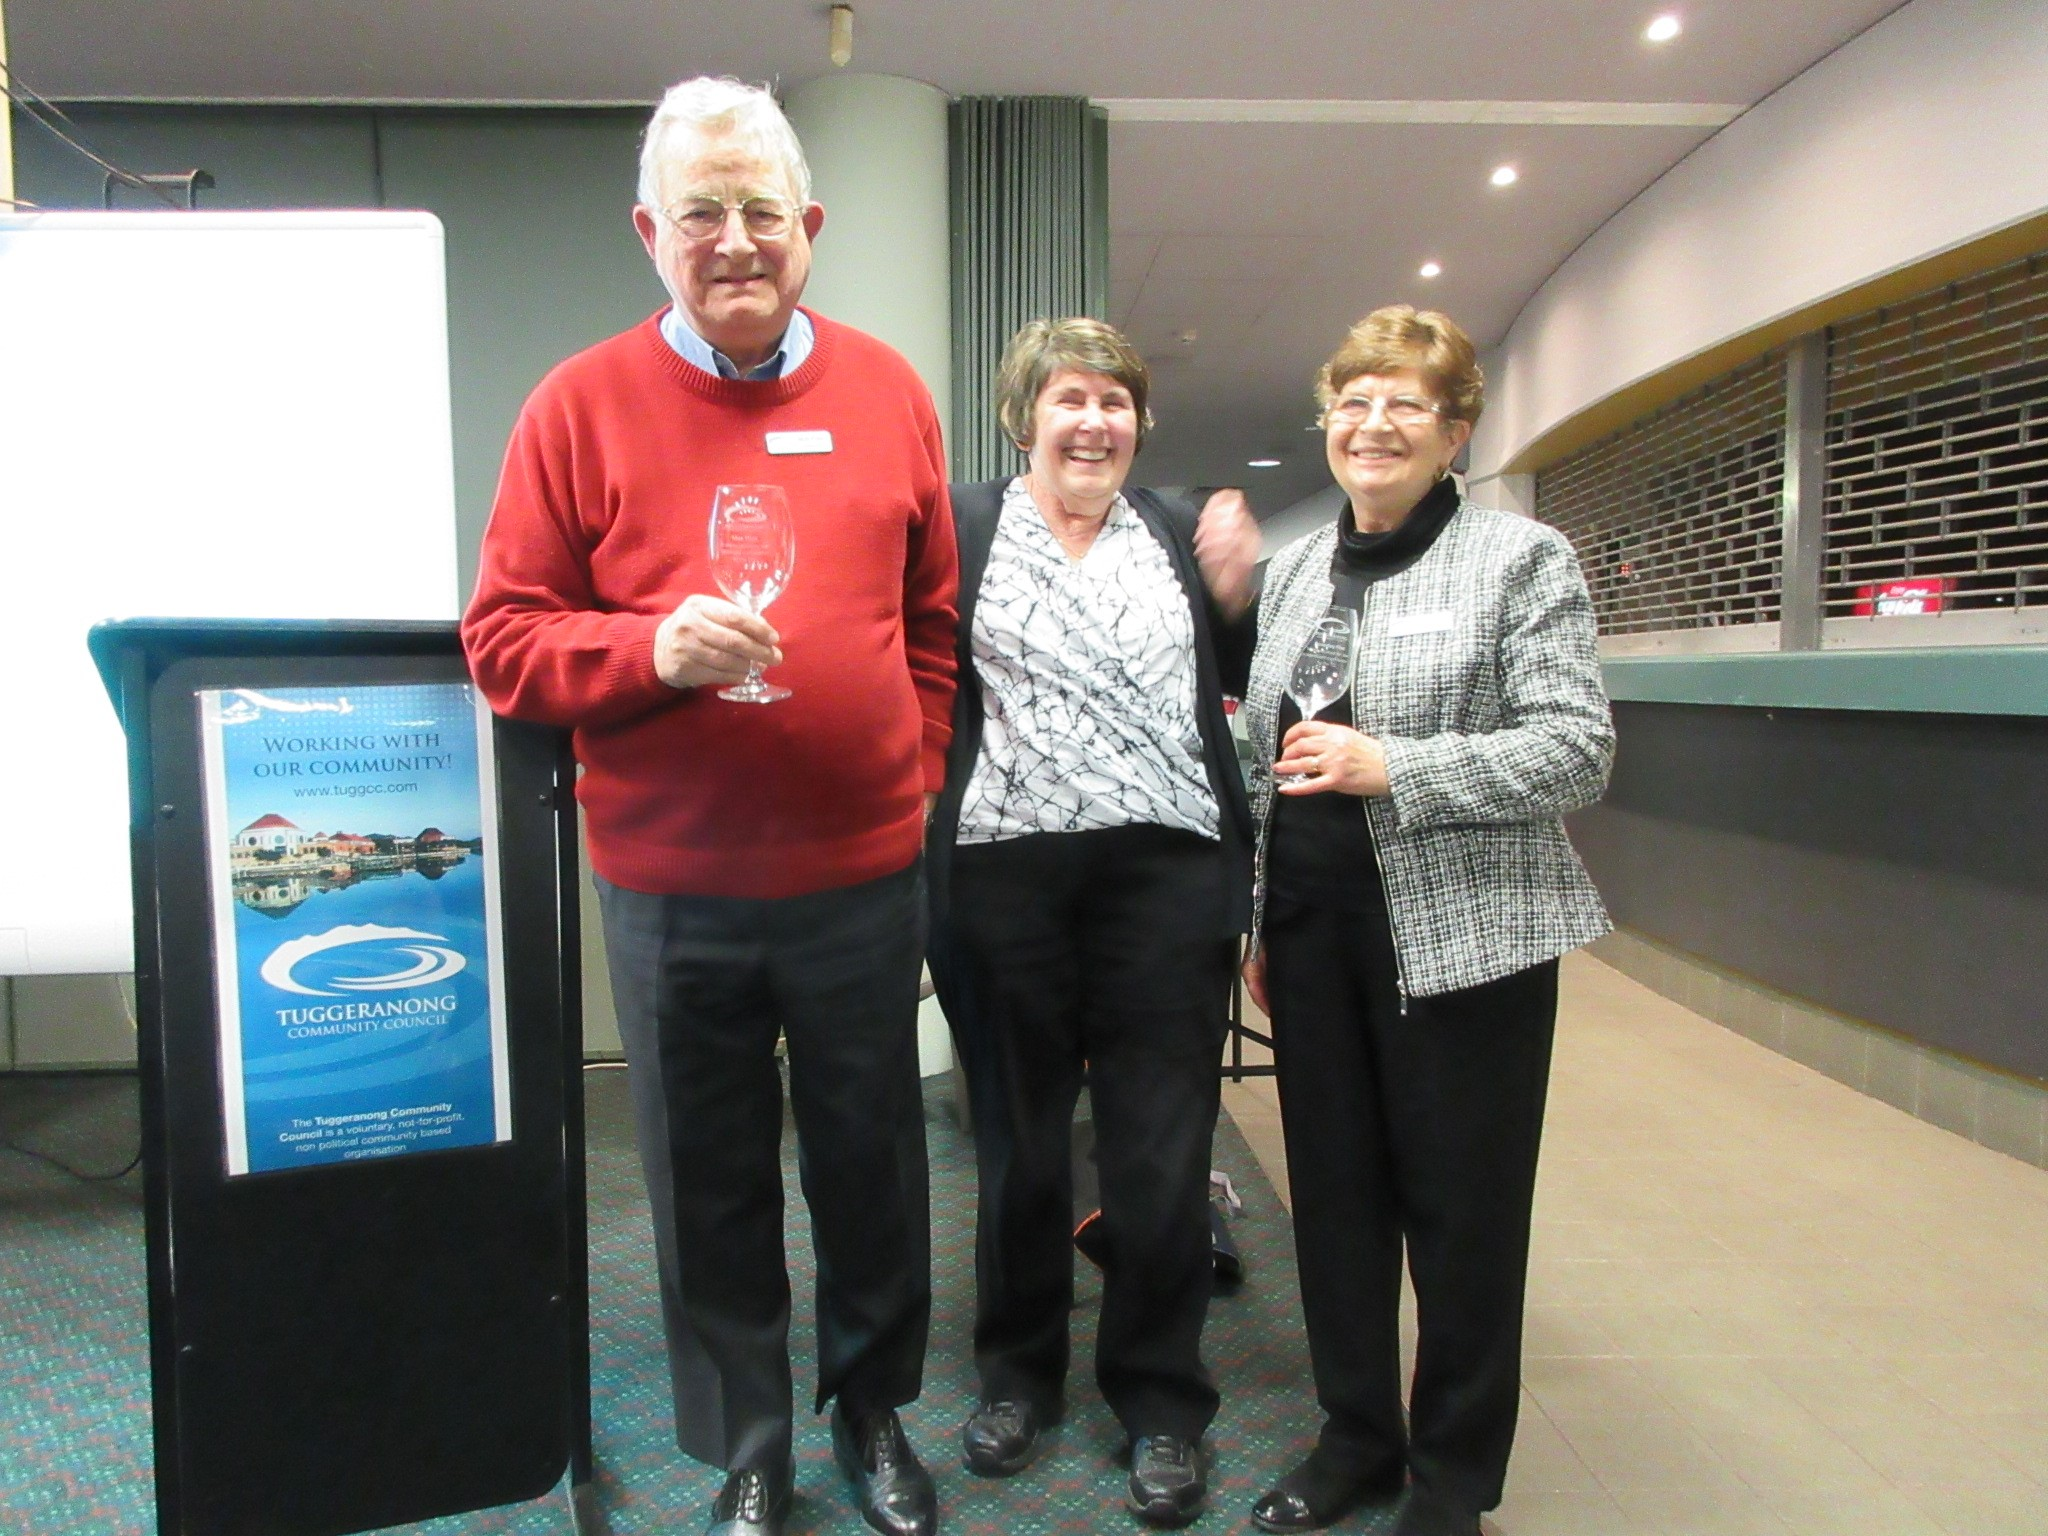 Many Thanks to Beverley and Max Flint for your fantastic support to the Tuggeranong Community Council (TCC)